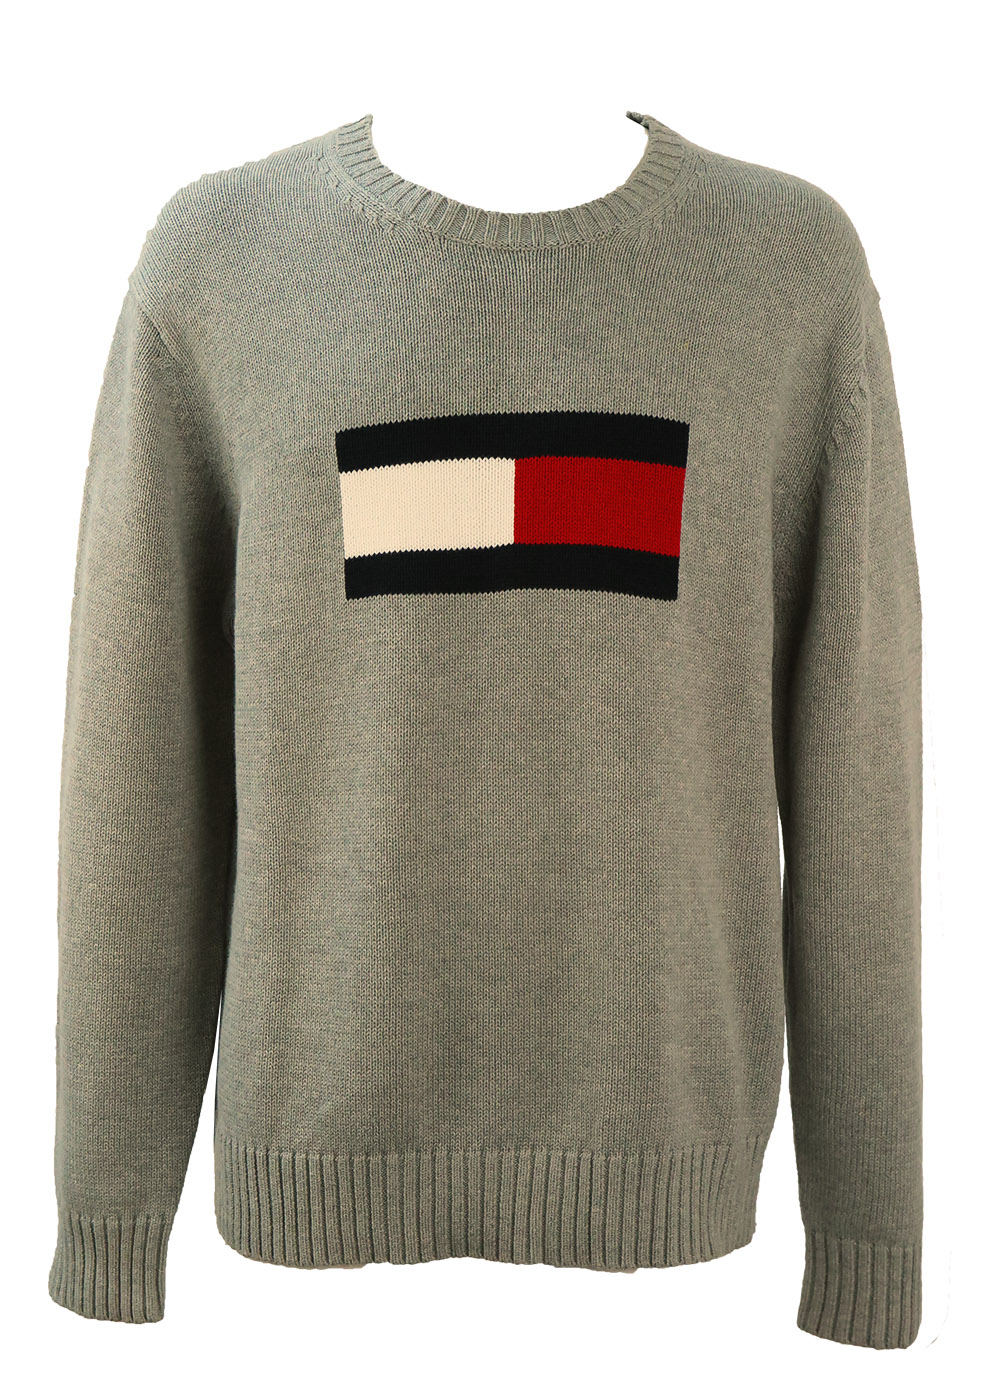 3b1c2d412 Tommy Hilfiger Grey Knit Jumper with Large Logo – XL – Reign Vintage